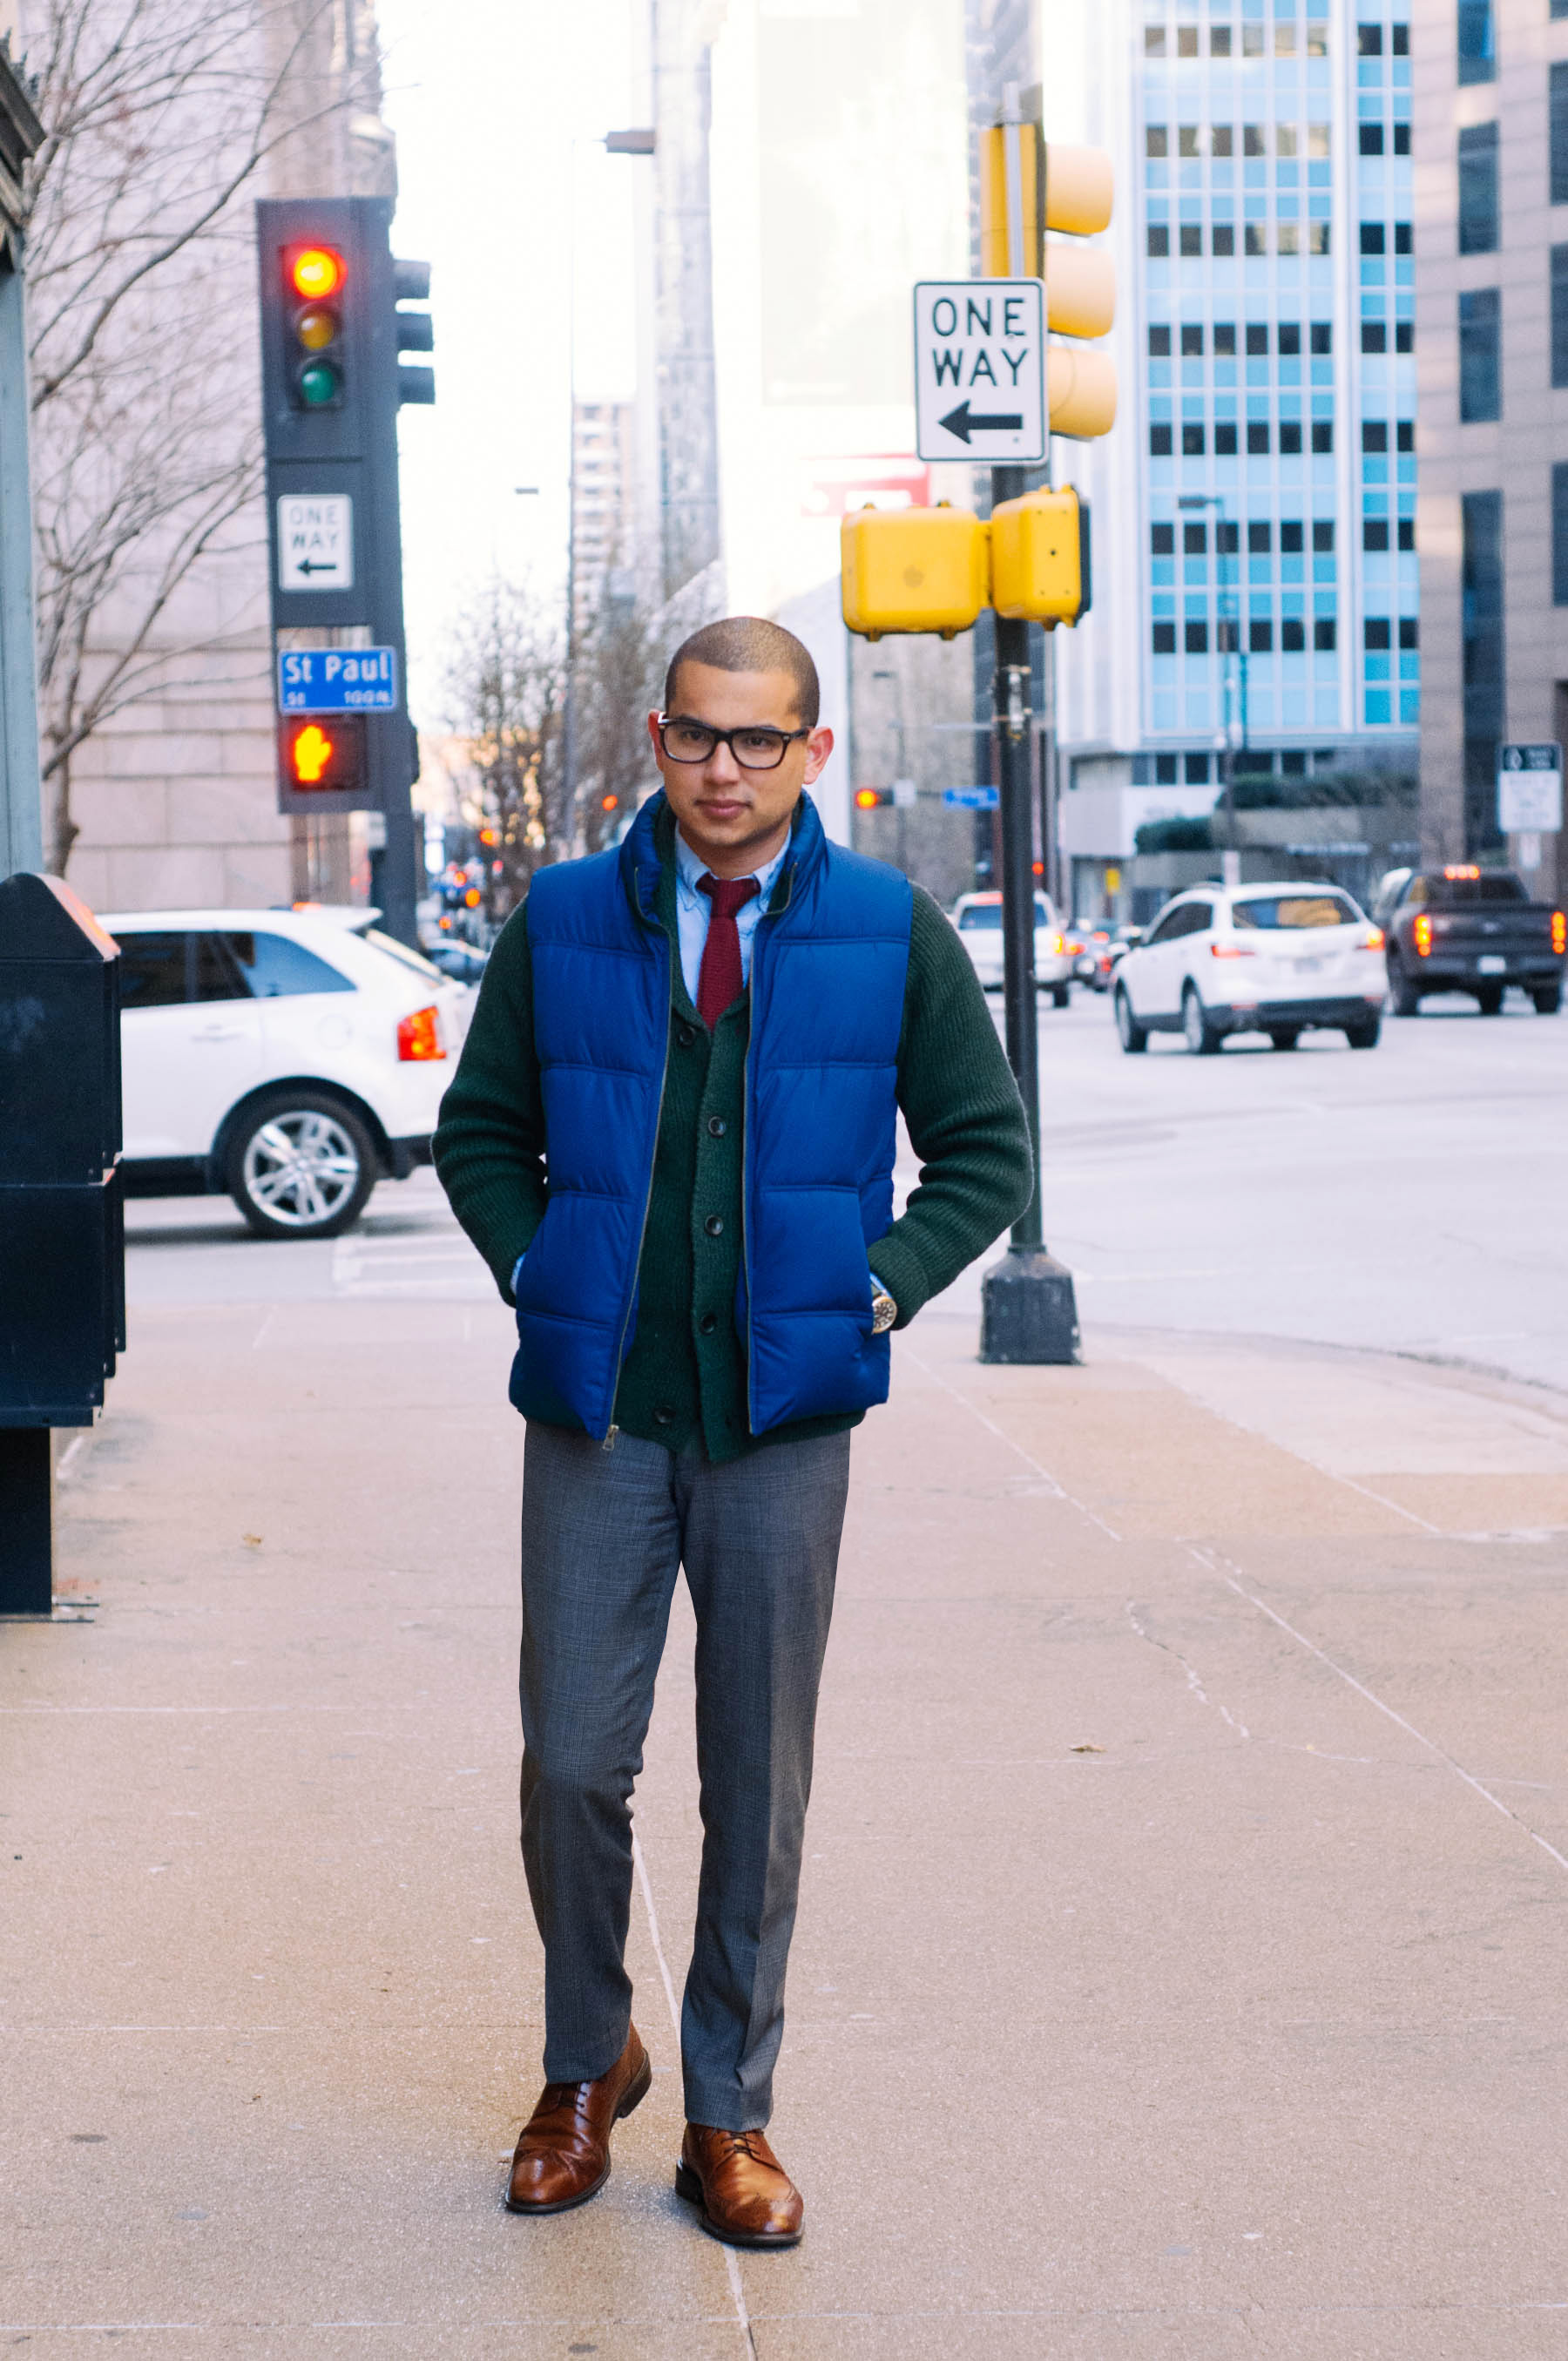 Vest: Merona (similar  here )   Sweater: H&M (similar  here )   Shirt: American Apparel (also love  this one )   Tie: The Tie Bar (similar  here )   Pants: Express (ca. 2005) ( these  are great too)   Shoes: Cole Haan (similar  here )   Glasses:  Warby Parker    Watch:  Shinola